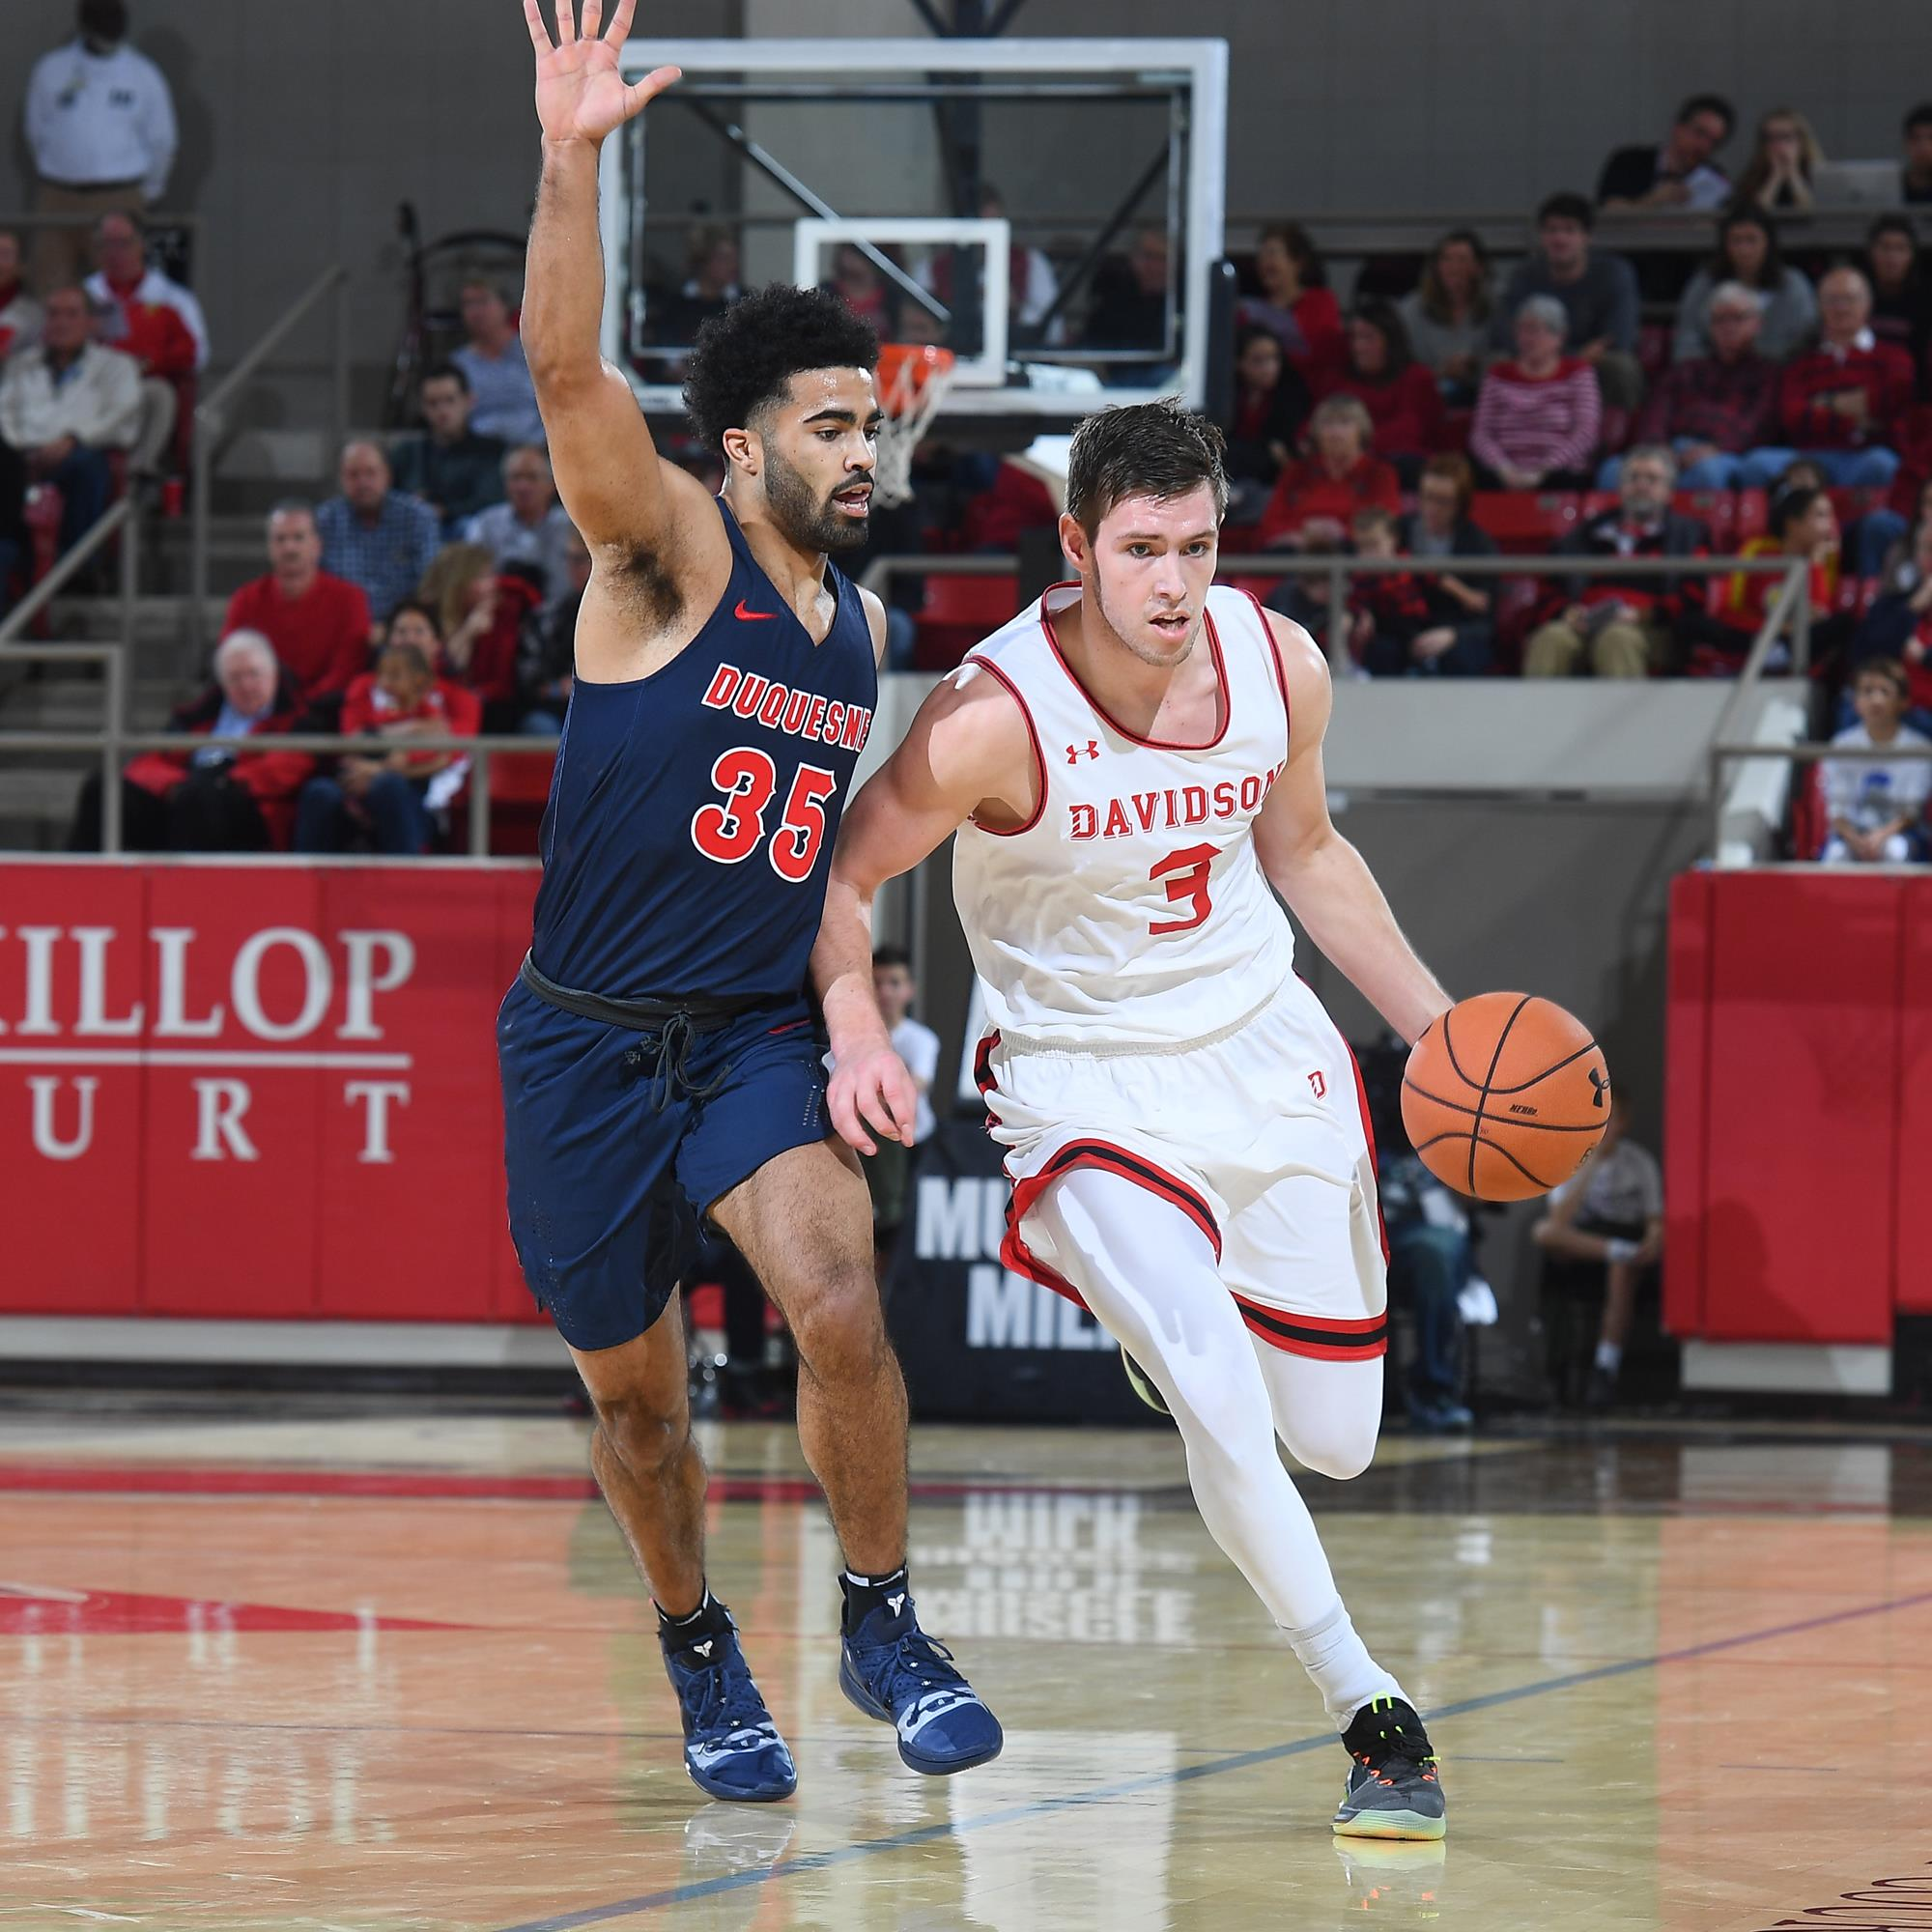 early in first half A-10 men's basketball action at Belk Arena on Saturday, January 05, 2019 in Davidson, North Carolina.